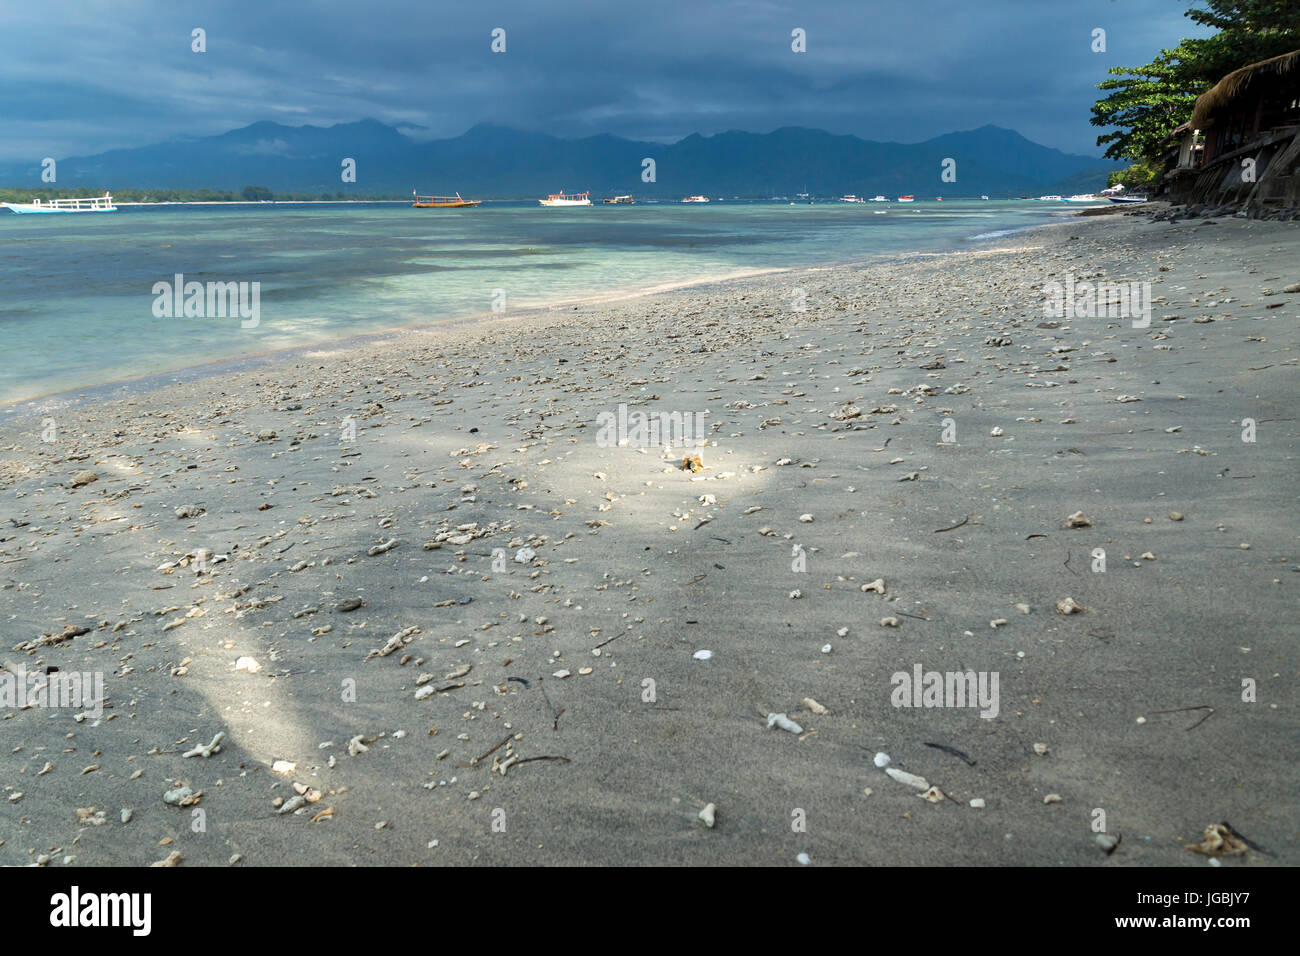 VIew to Lombok mountains from the sunny beach of Gili Air during sunset, Indonesia - Stock Image